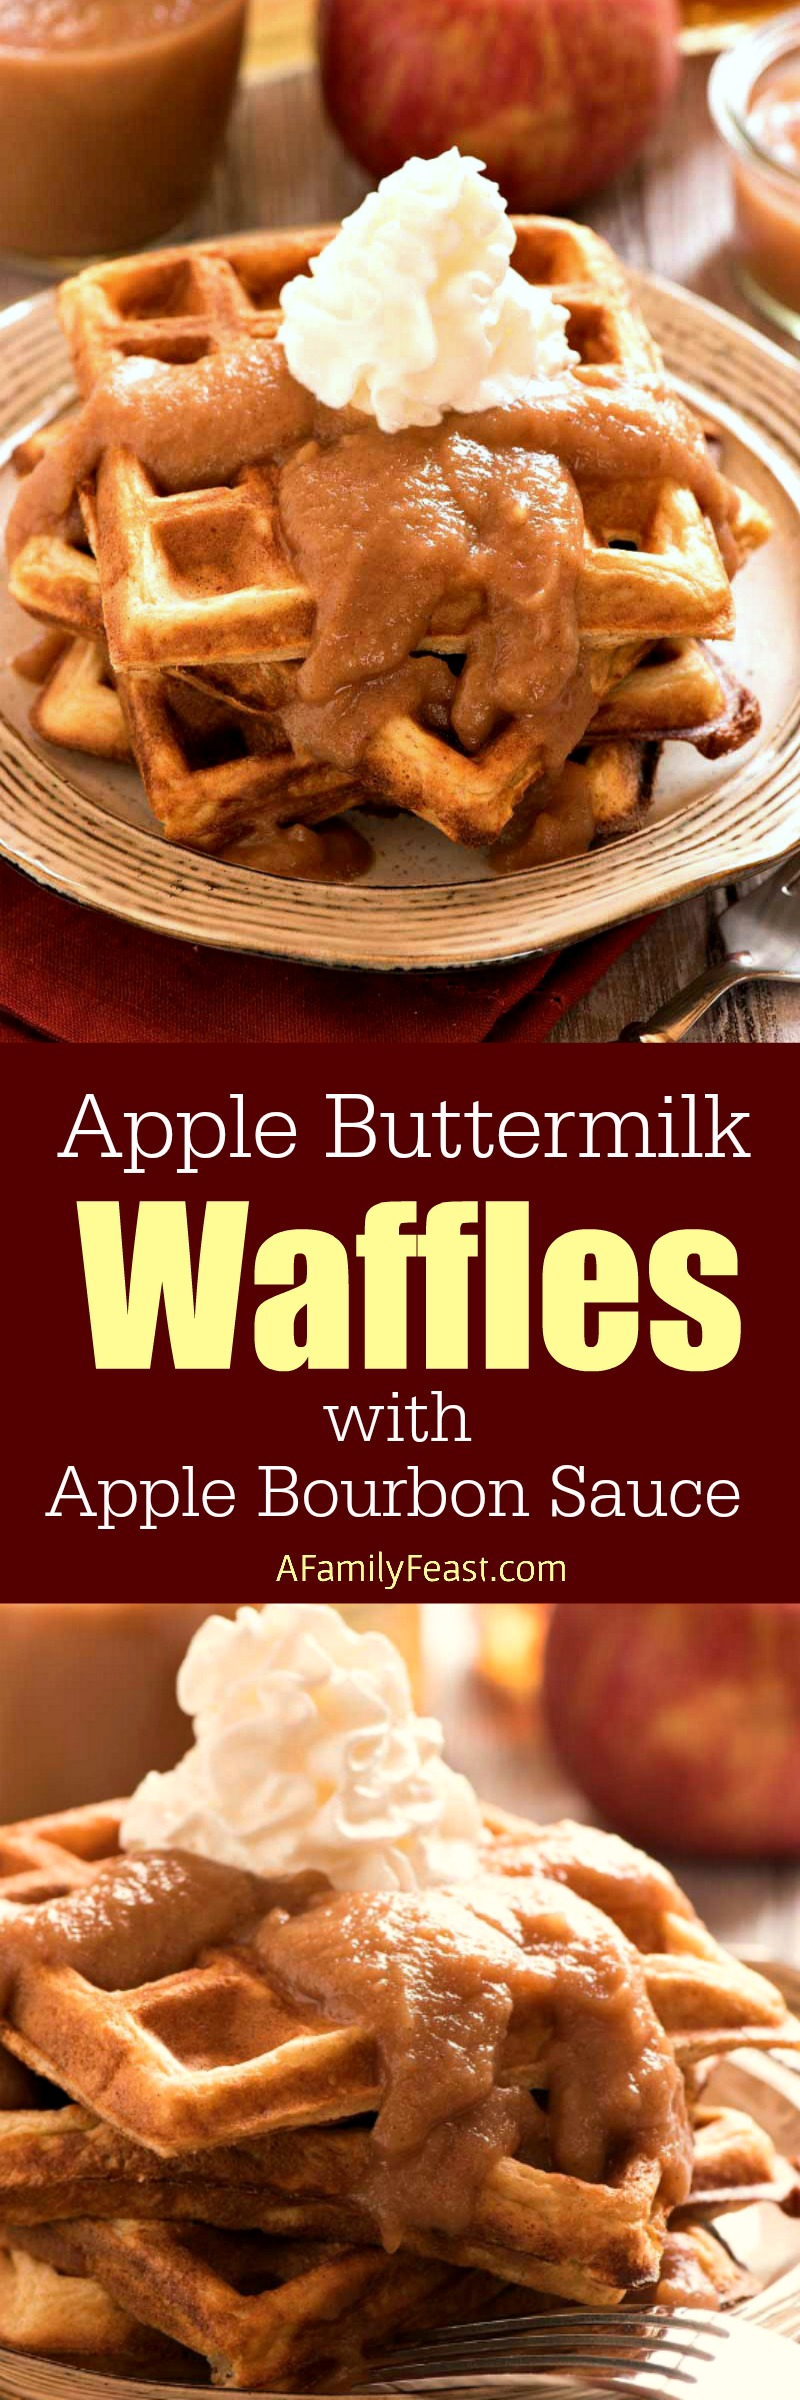 Make these epic Apple Buttermilk Waffles with Apple Bourbon Sauce for brunch this weekend. (So good!)